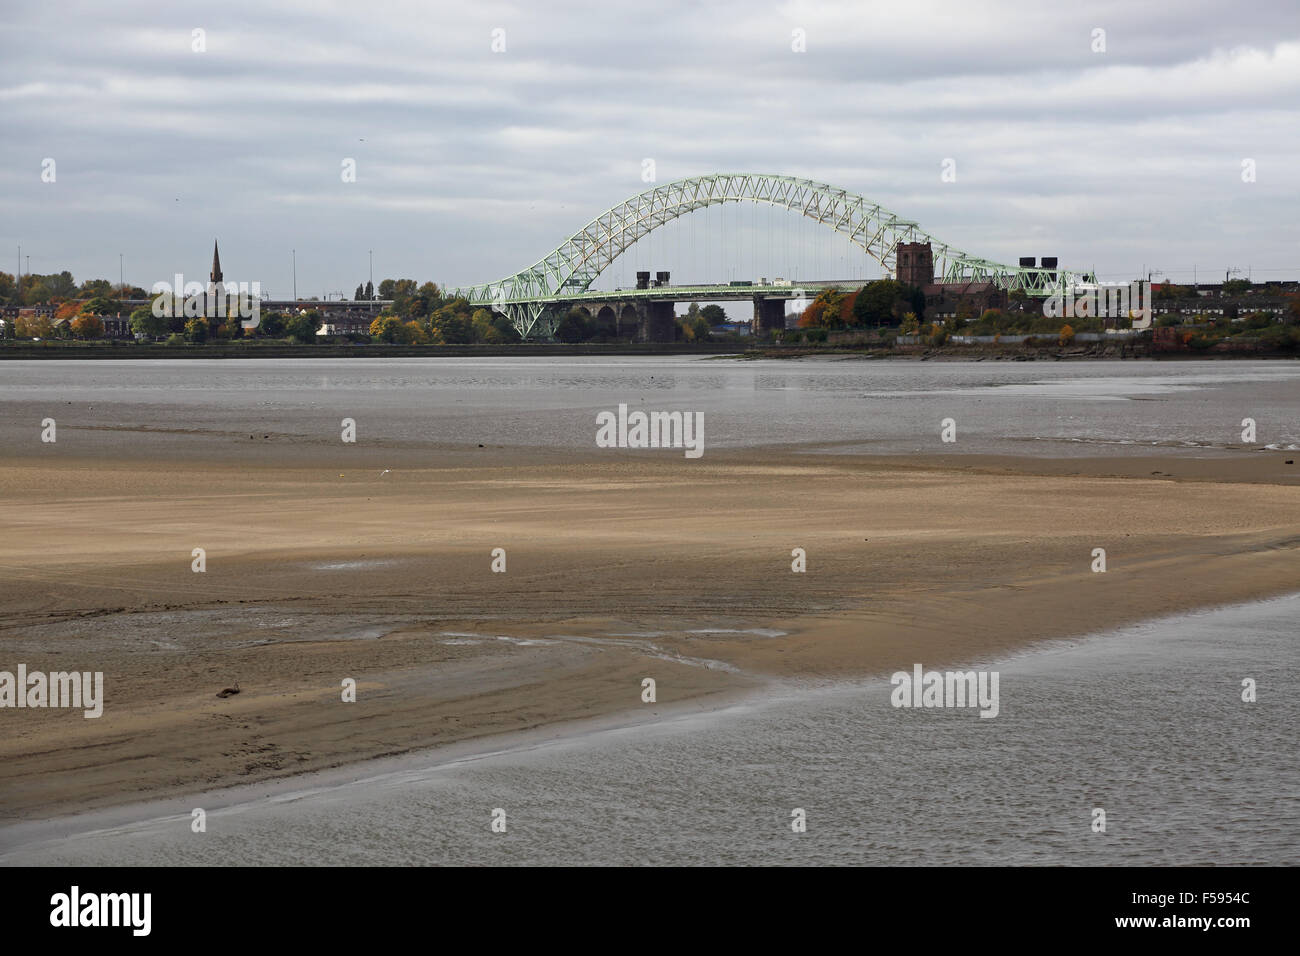 The Silver Jubilee Bridge across the River Mersey at Runcorn viewed from the east showing mudflats of the Mersey - Stock Image